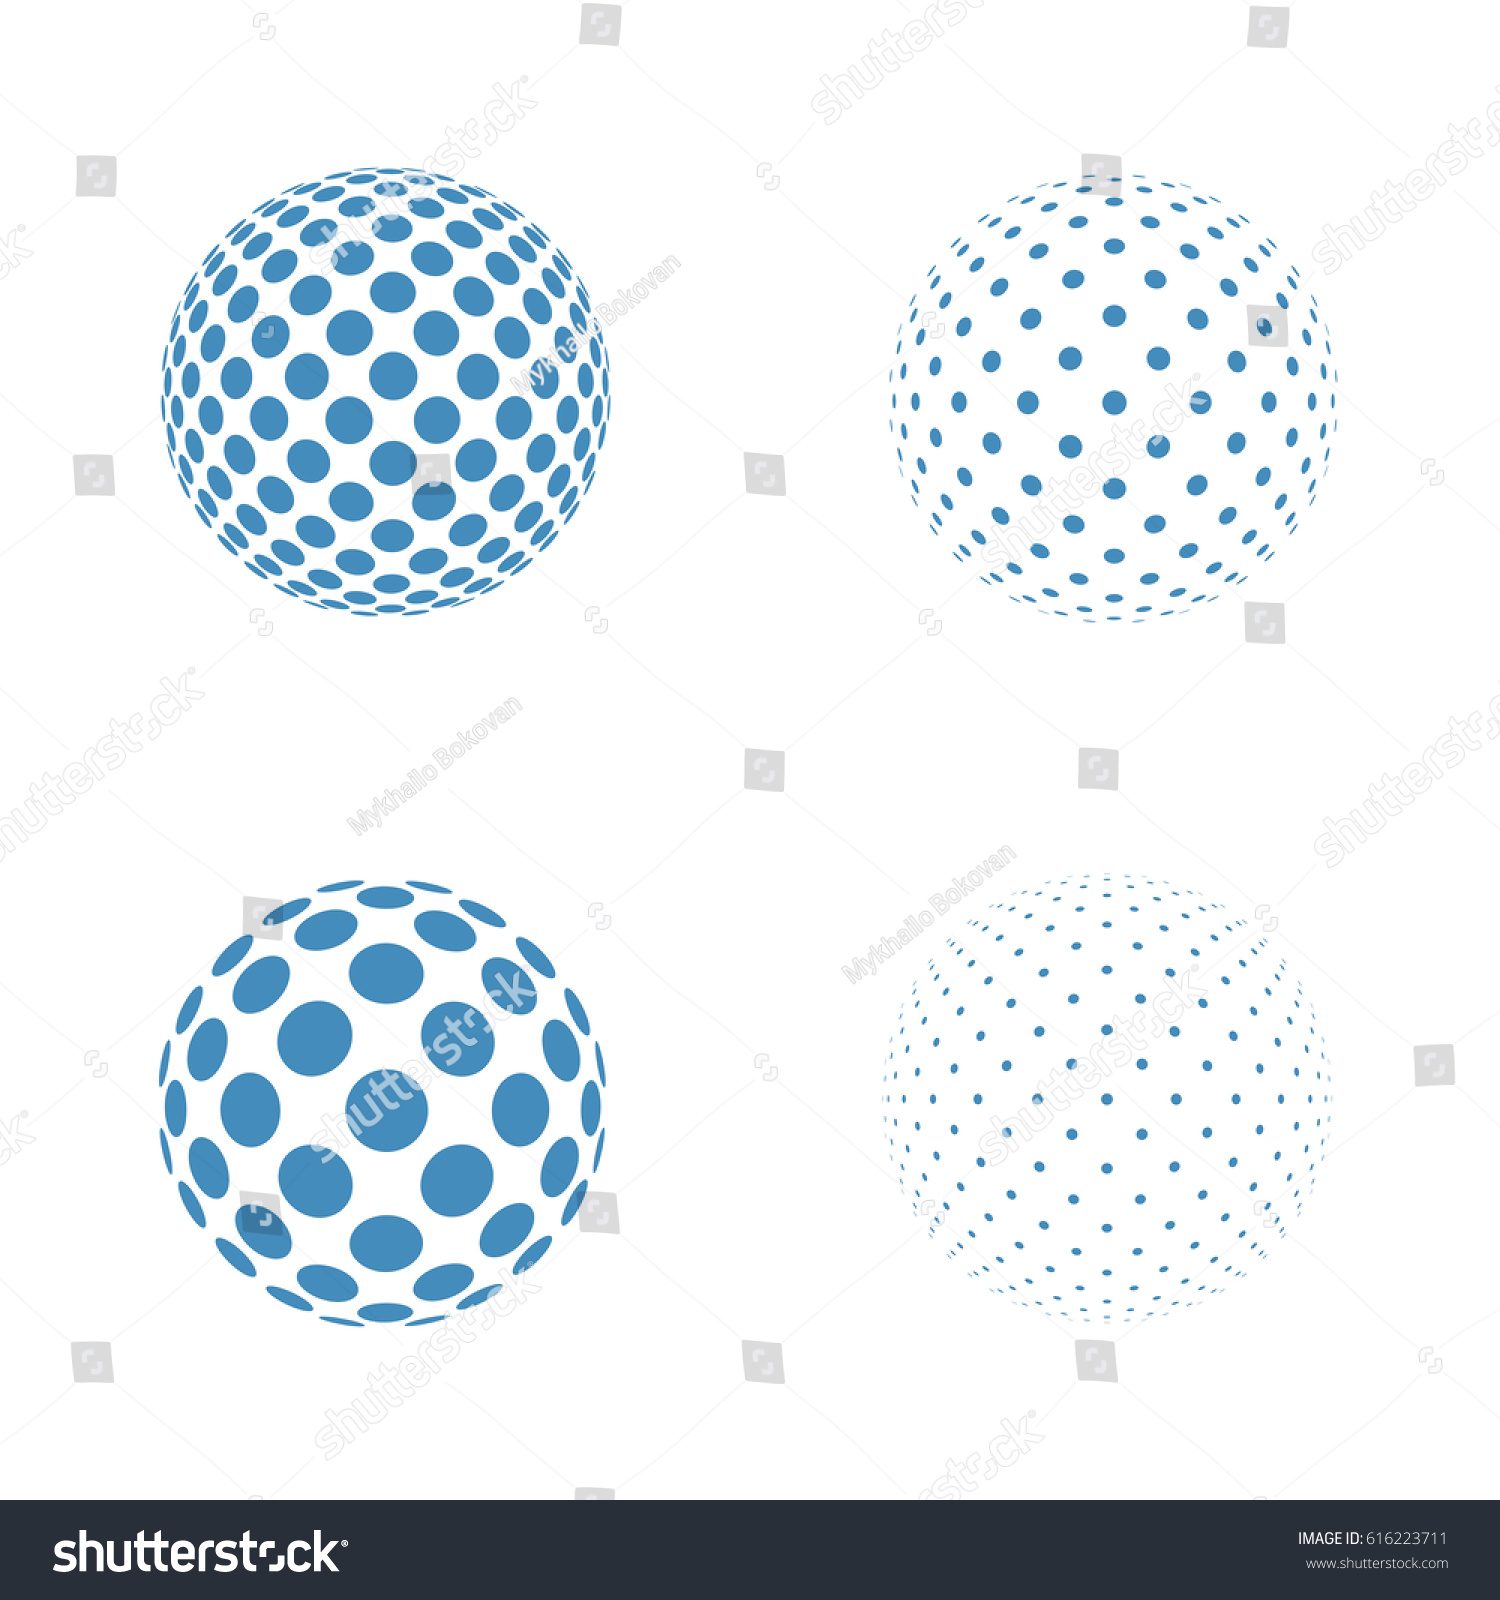 Abstract Globe Logo Template Icons Sphere Stock Photo Photo Vector